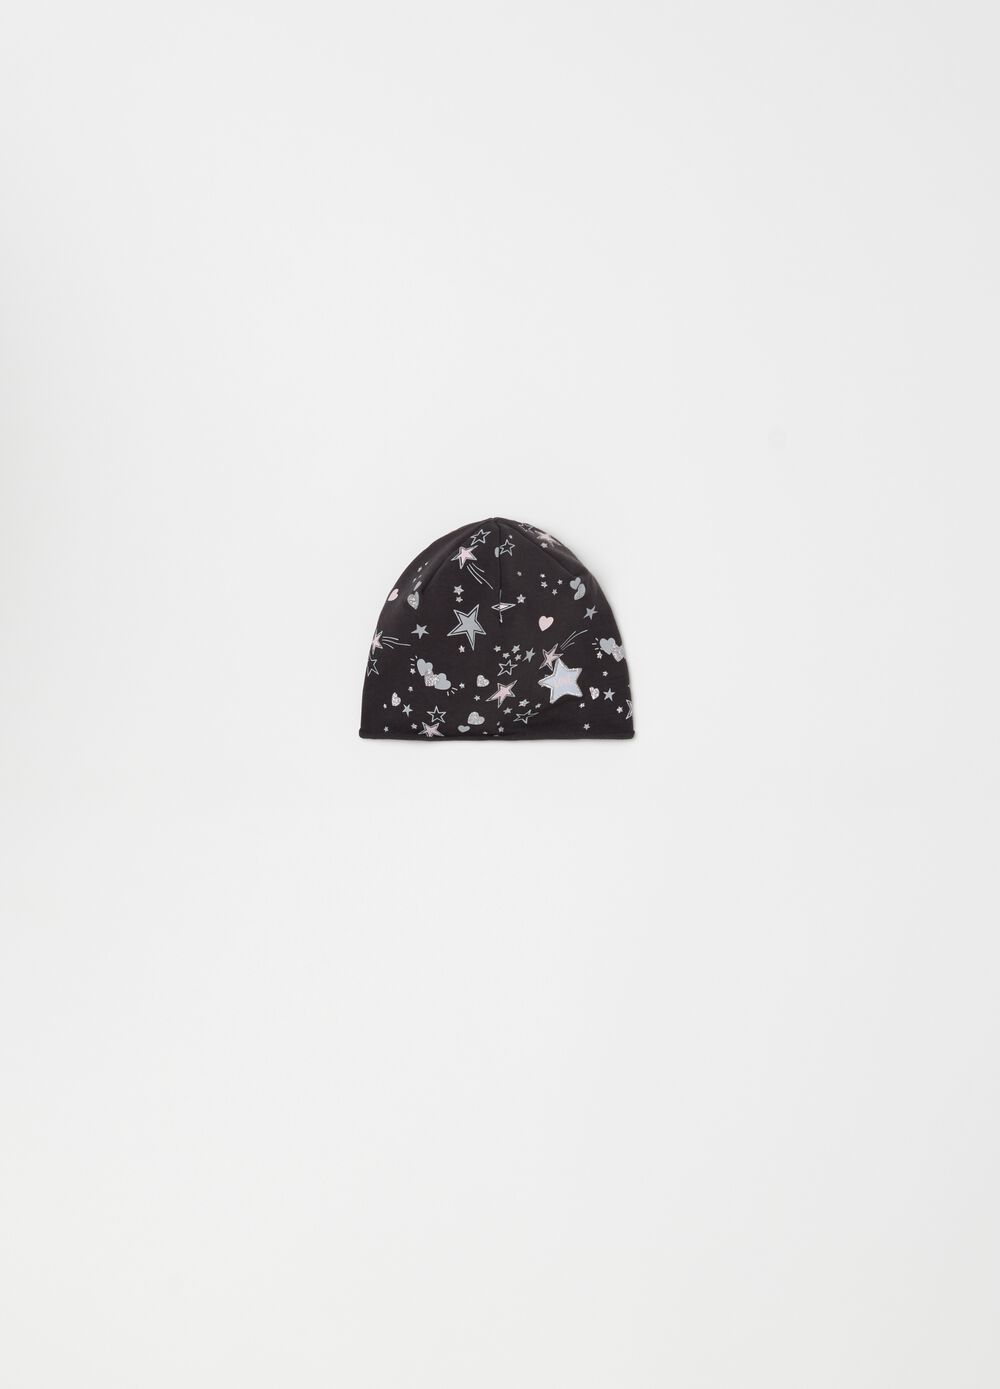 Hat with glitter stars and hearts print